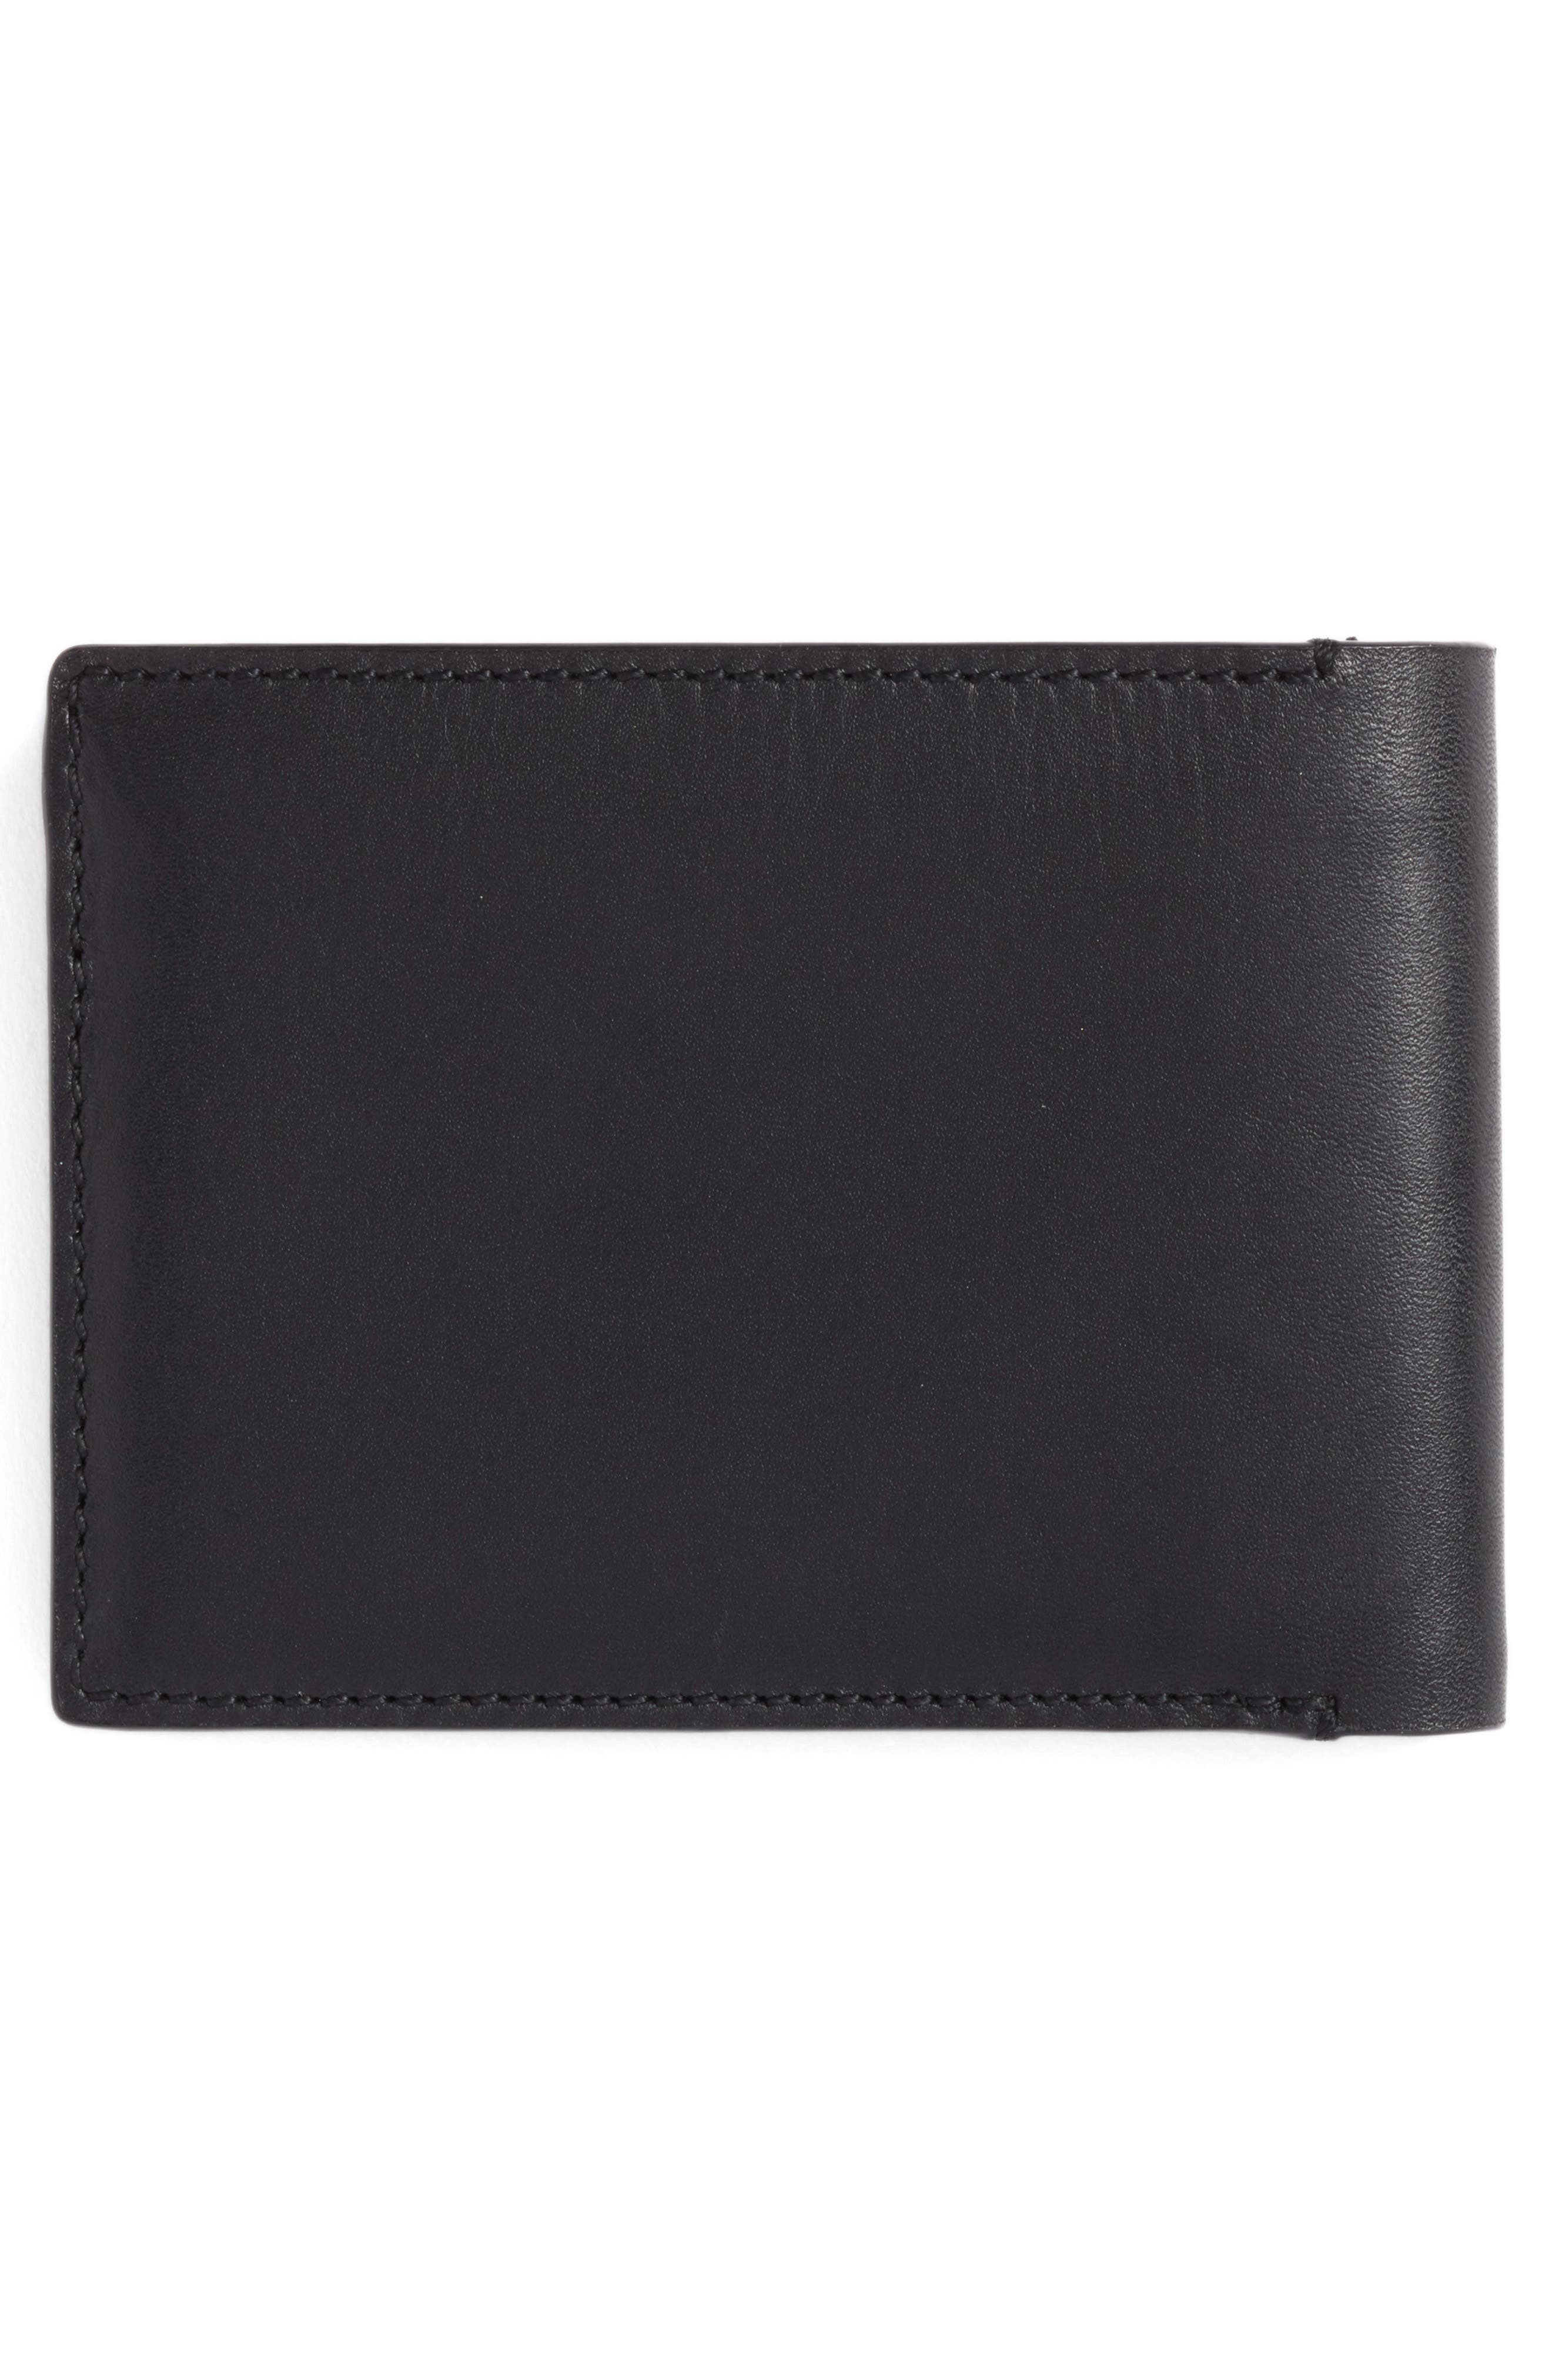 Bifold Leather Wallet with Pass Case,                             Alternate thumbnail 3, color,                             001